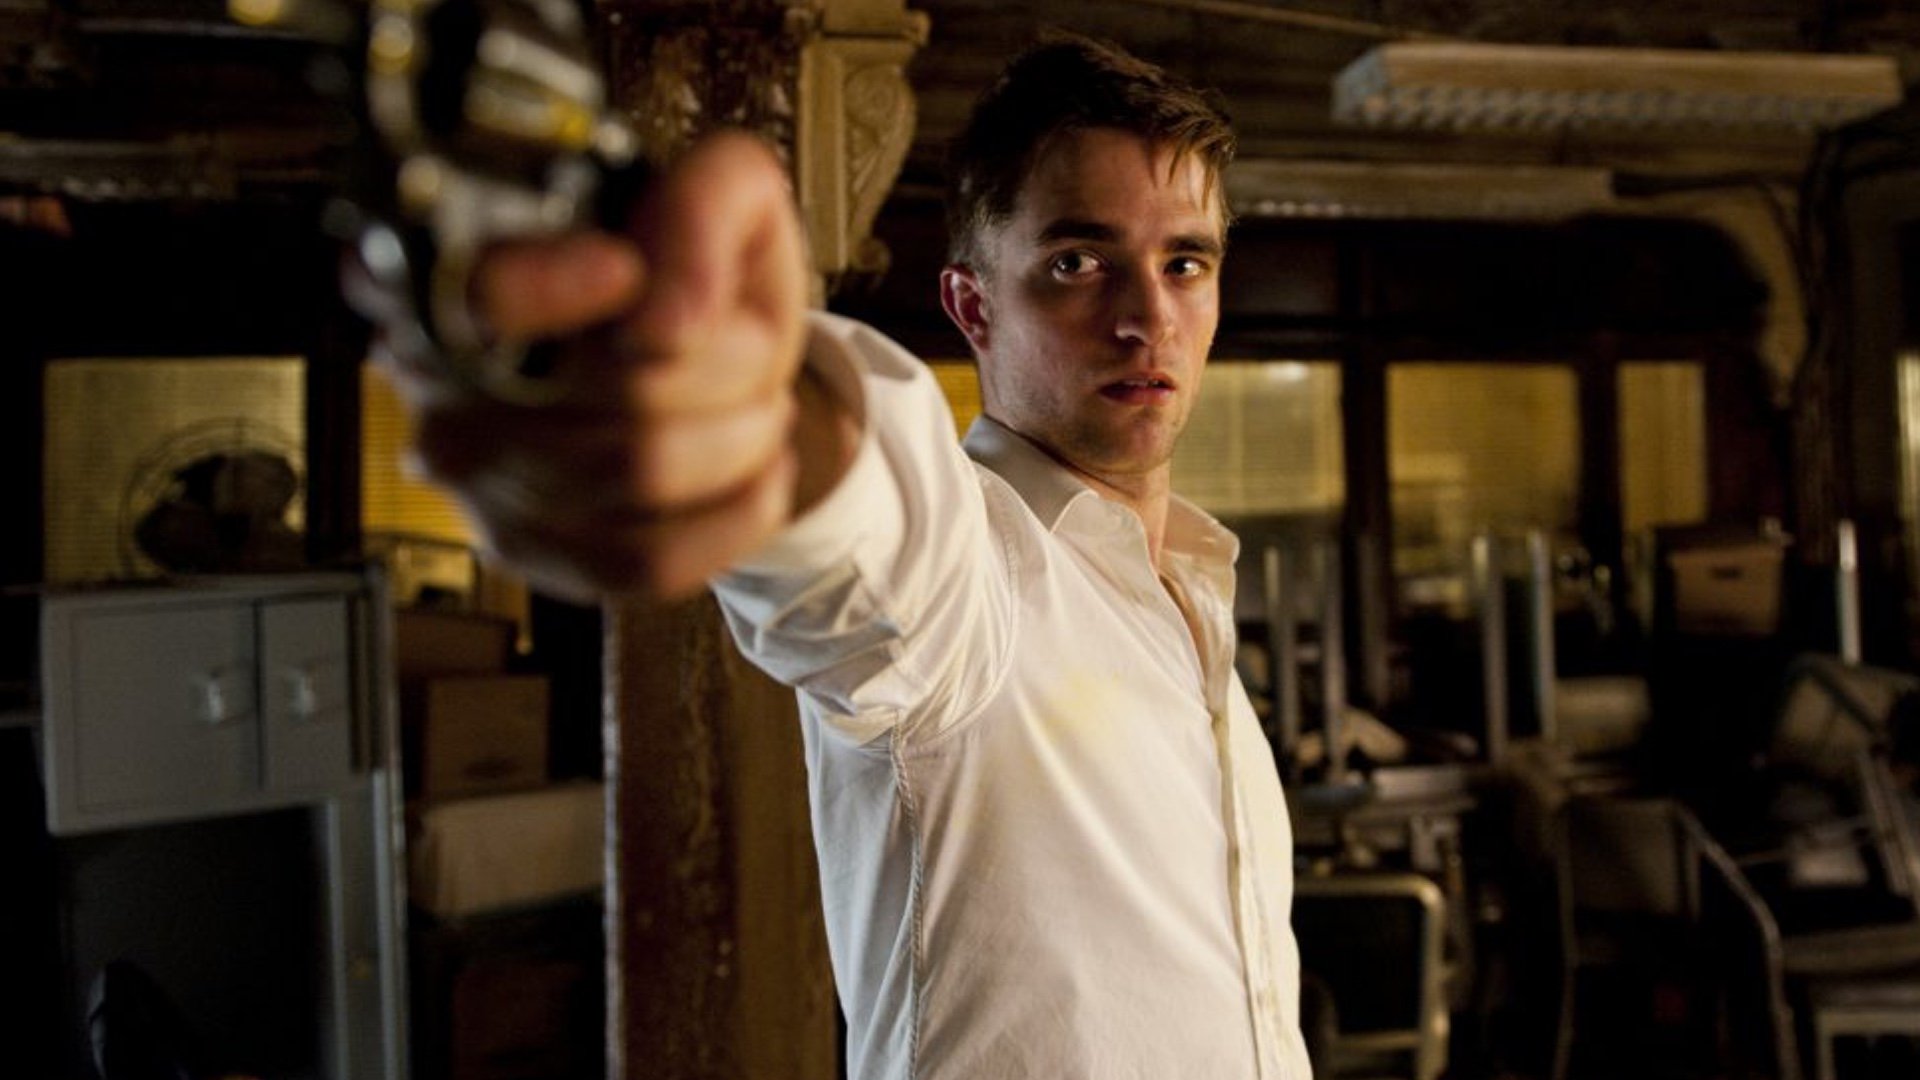 multiple-fan-petitions-pop-up-against-robert-pattinson-playing-batman-no-matter-who-is-cast-you-cant-make-all-fans-happy-social.jpg